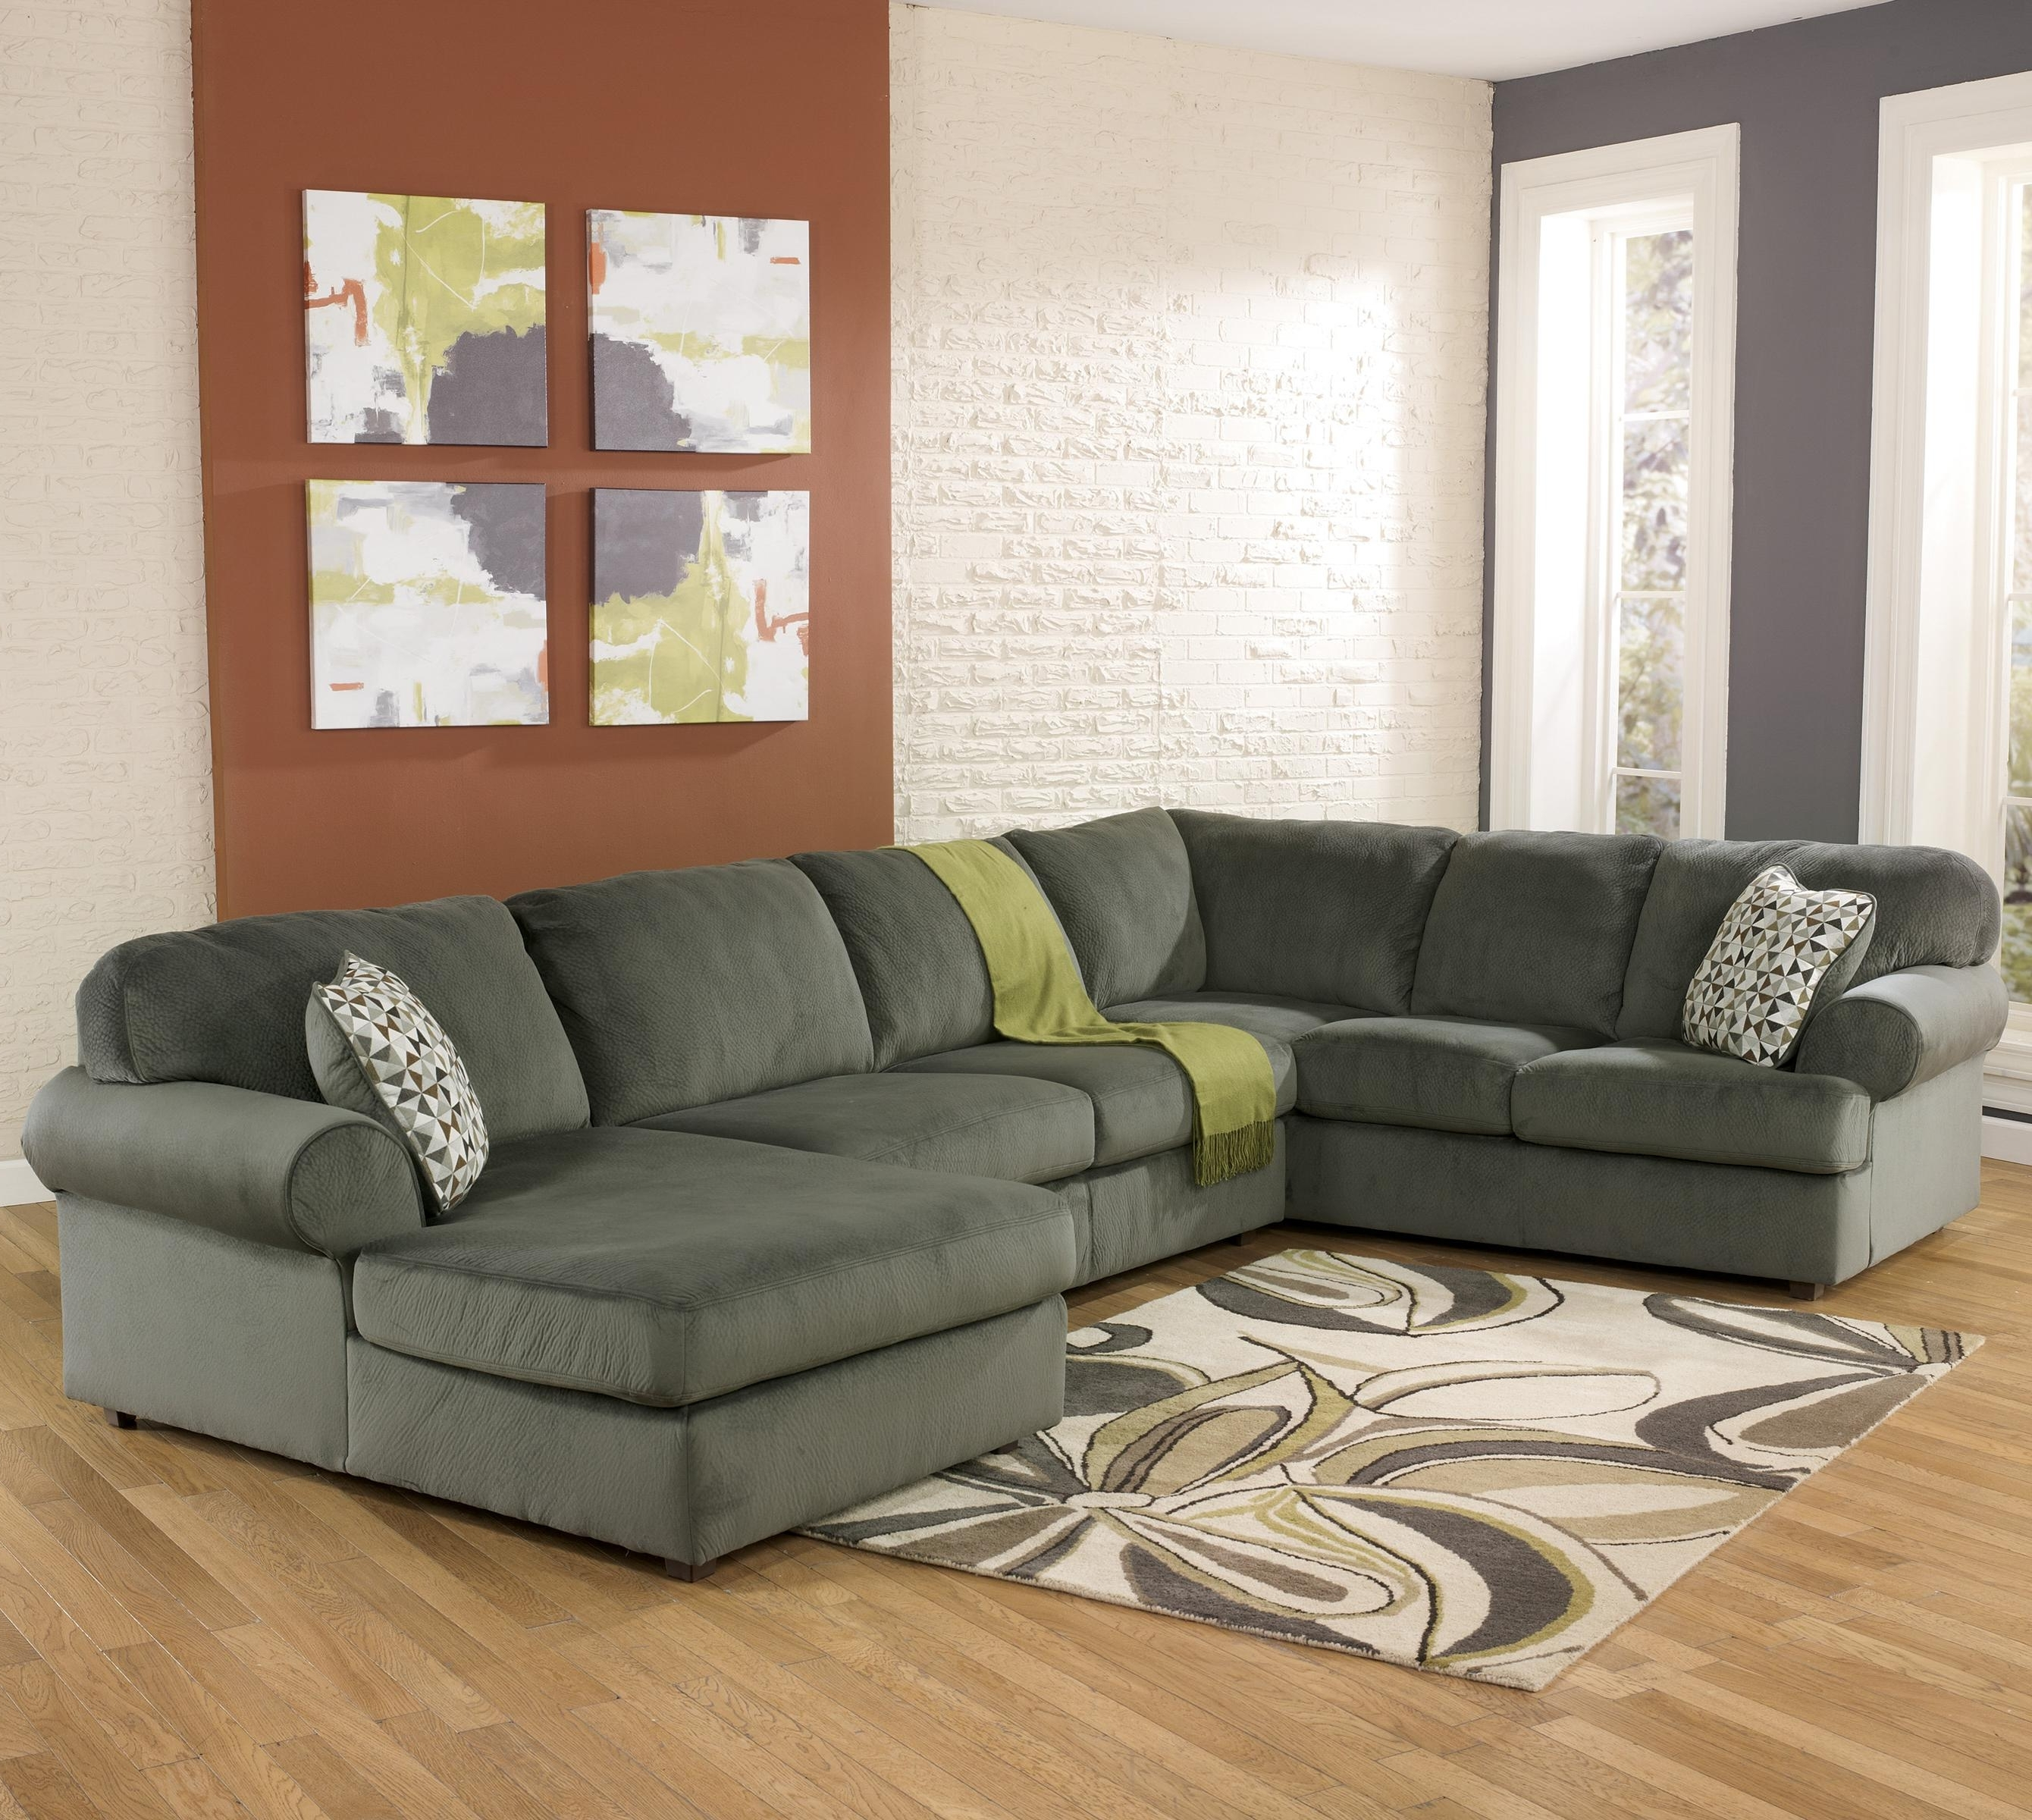 Best And Newest Signature Designashley Jessa Place – Pewter Casual Sectional Intended For Sectional Sofas In North Carolina (View 4 of 20)